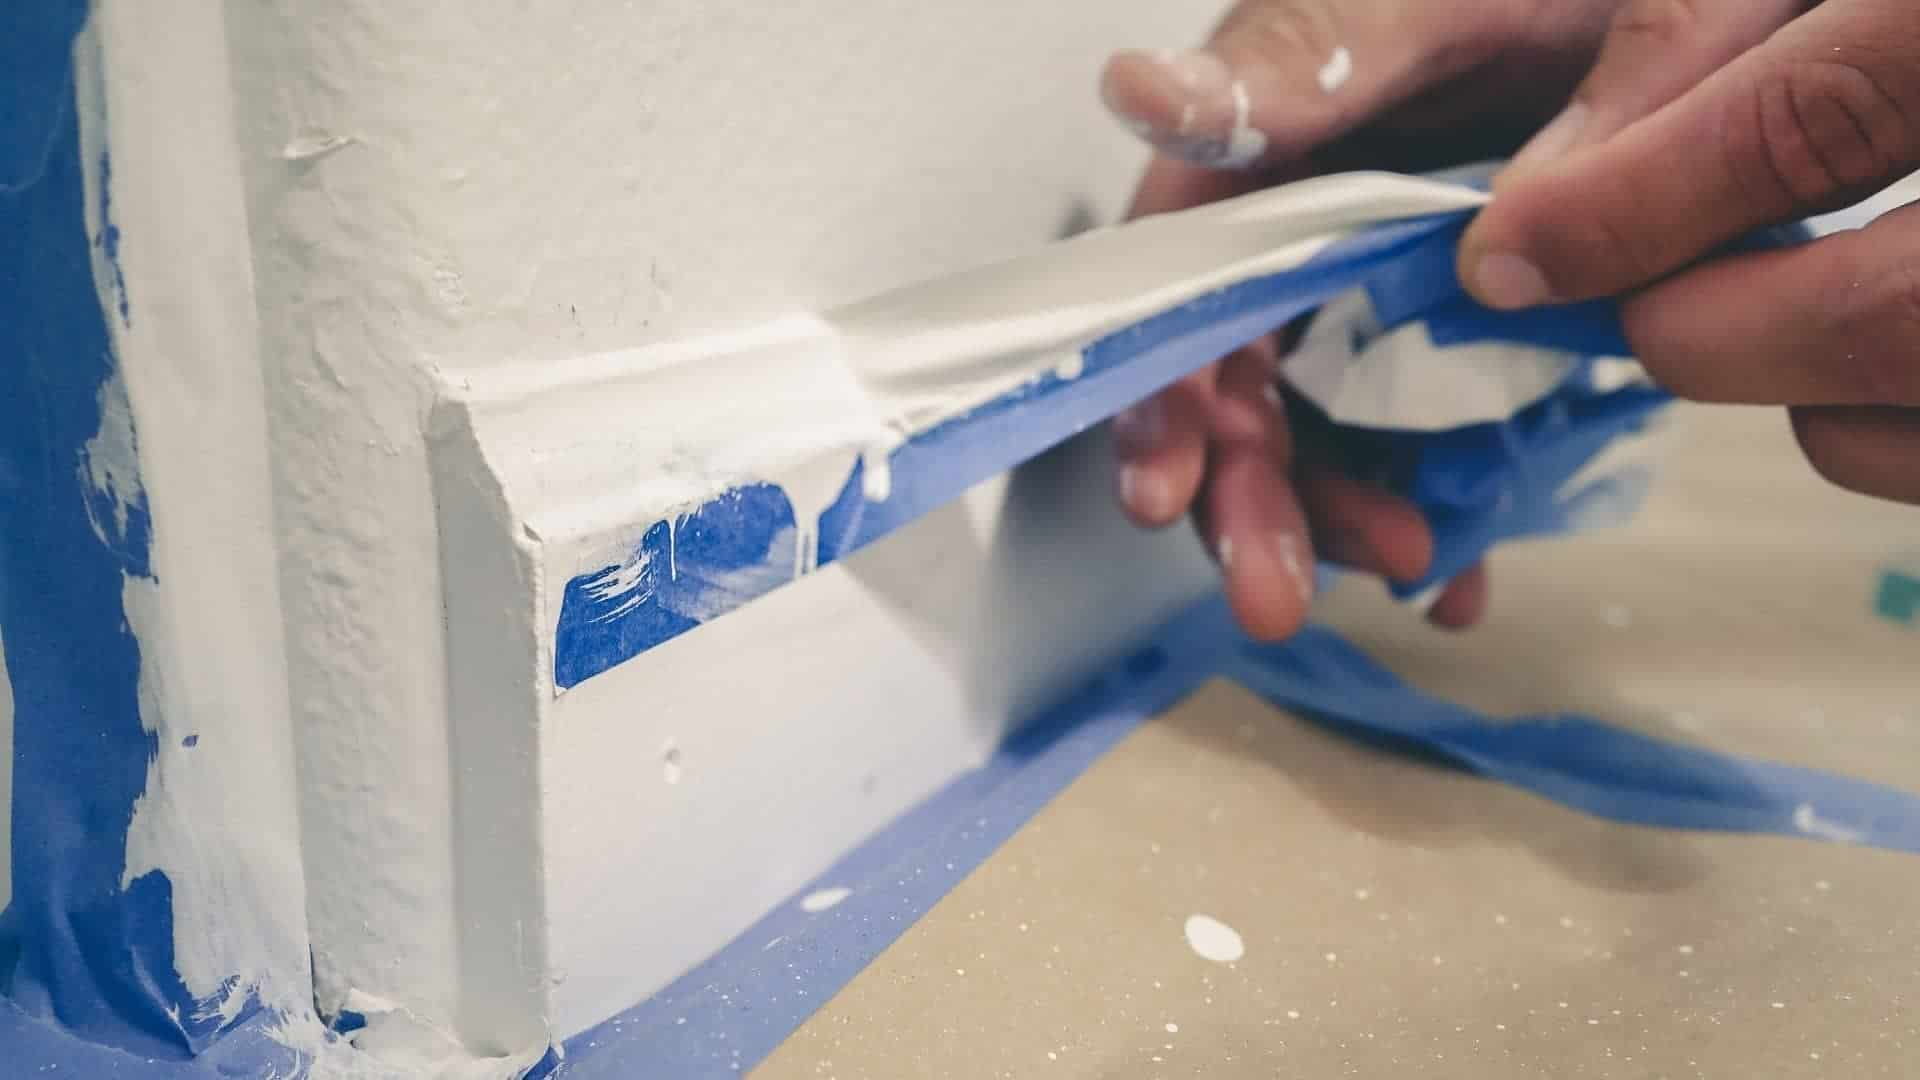 How To Remove Tape From Wall Without Peeling Paint